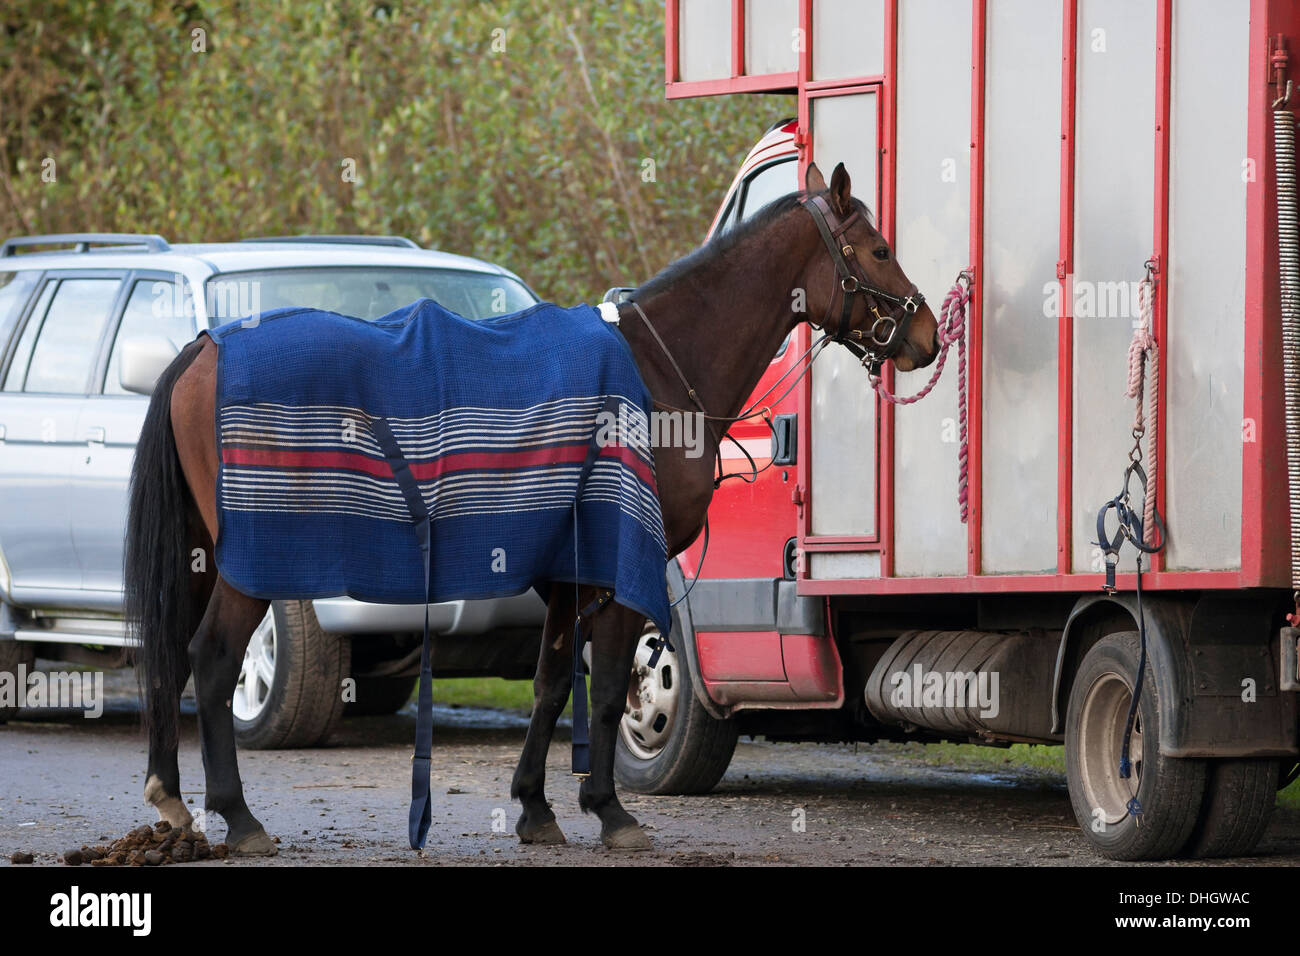 Horse tied to horse box with blanket - Stock Image